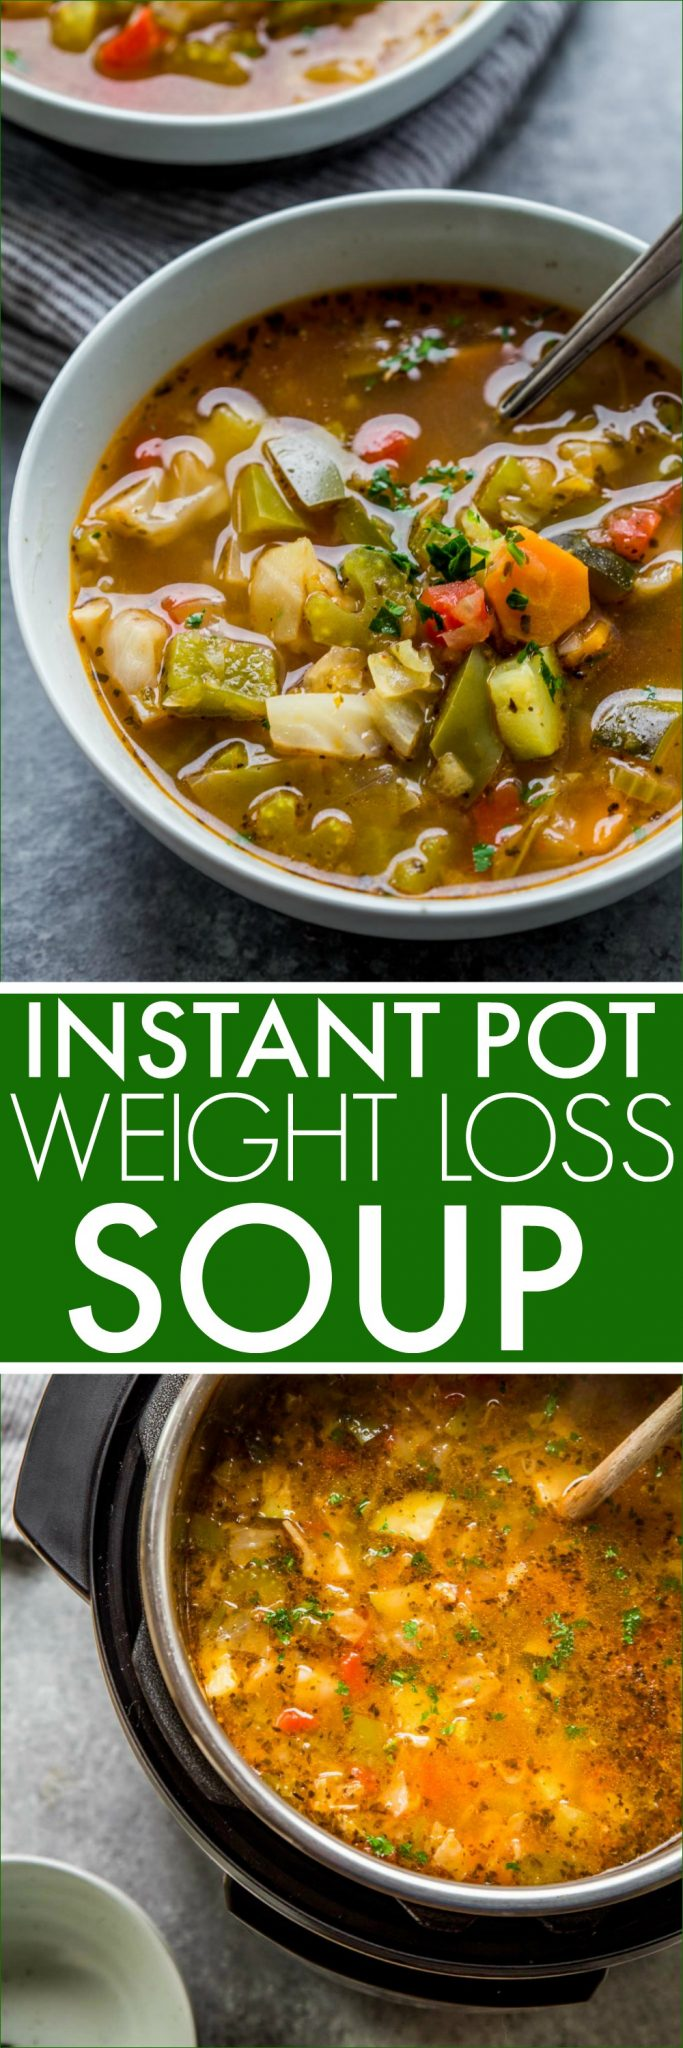 Instant Pot Weight Loss Cabbage Soup is loaded with fresh vegetables. It's high in flavor, yet naturally low in fat and calories. #dietsoup #weightlosssoup #instantpot #instantpotsoup #soup #cabbagesoup